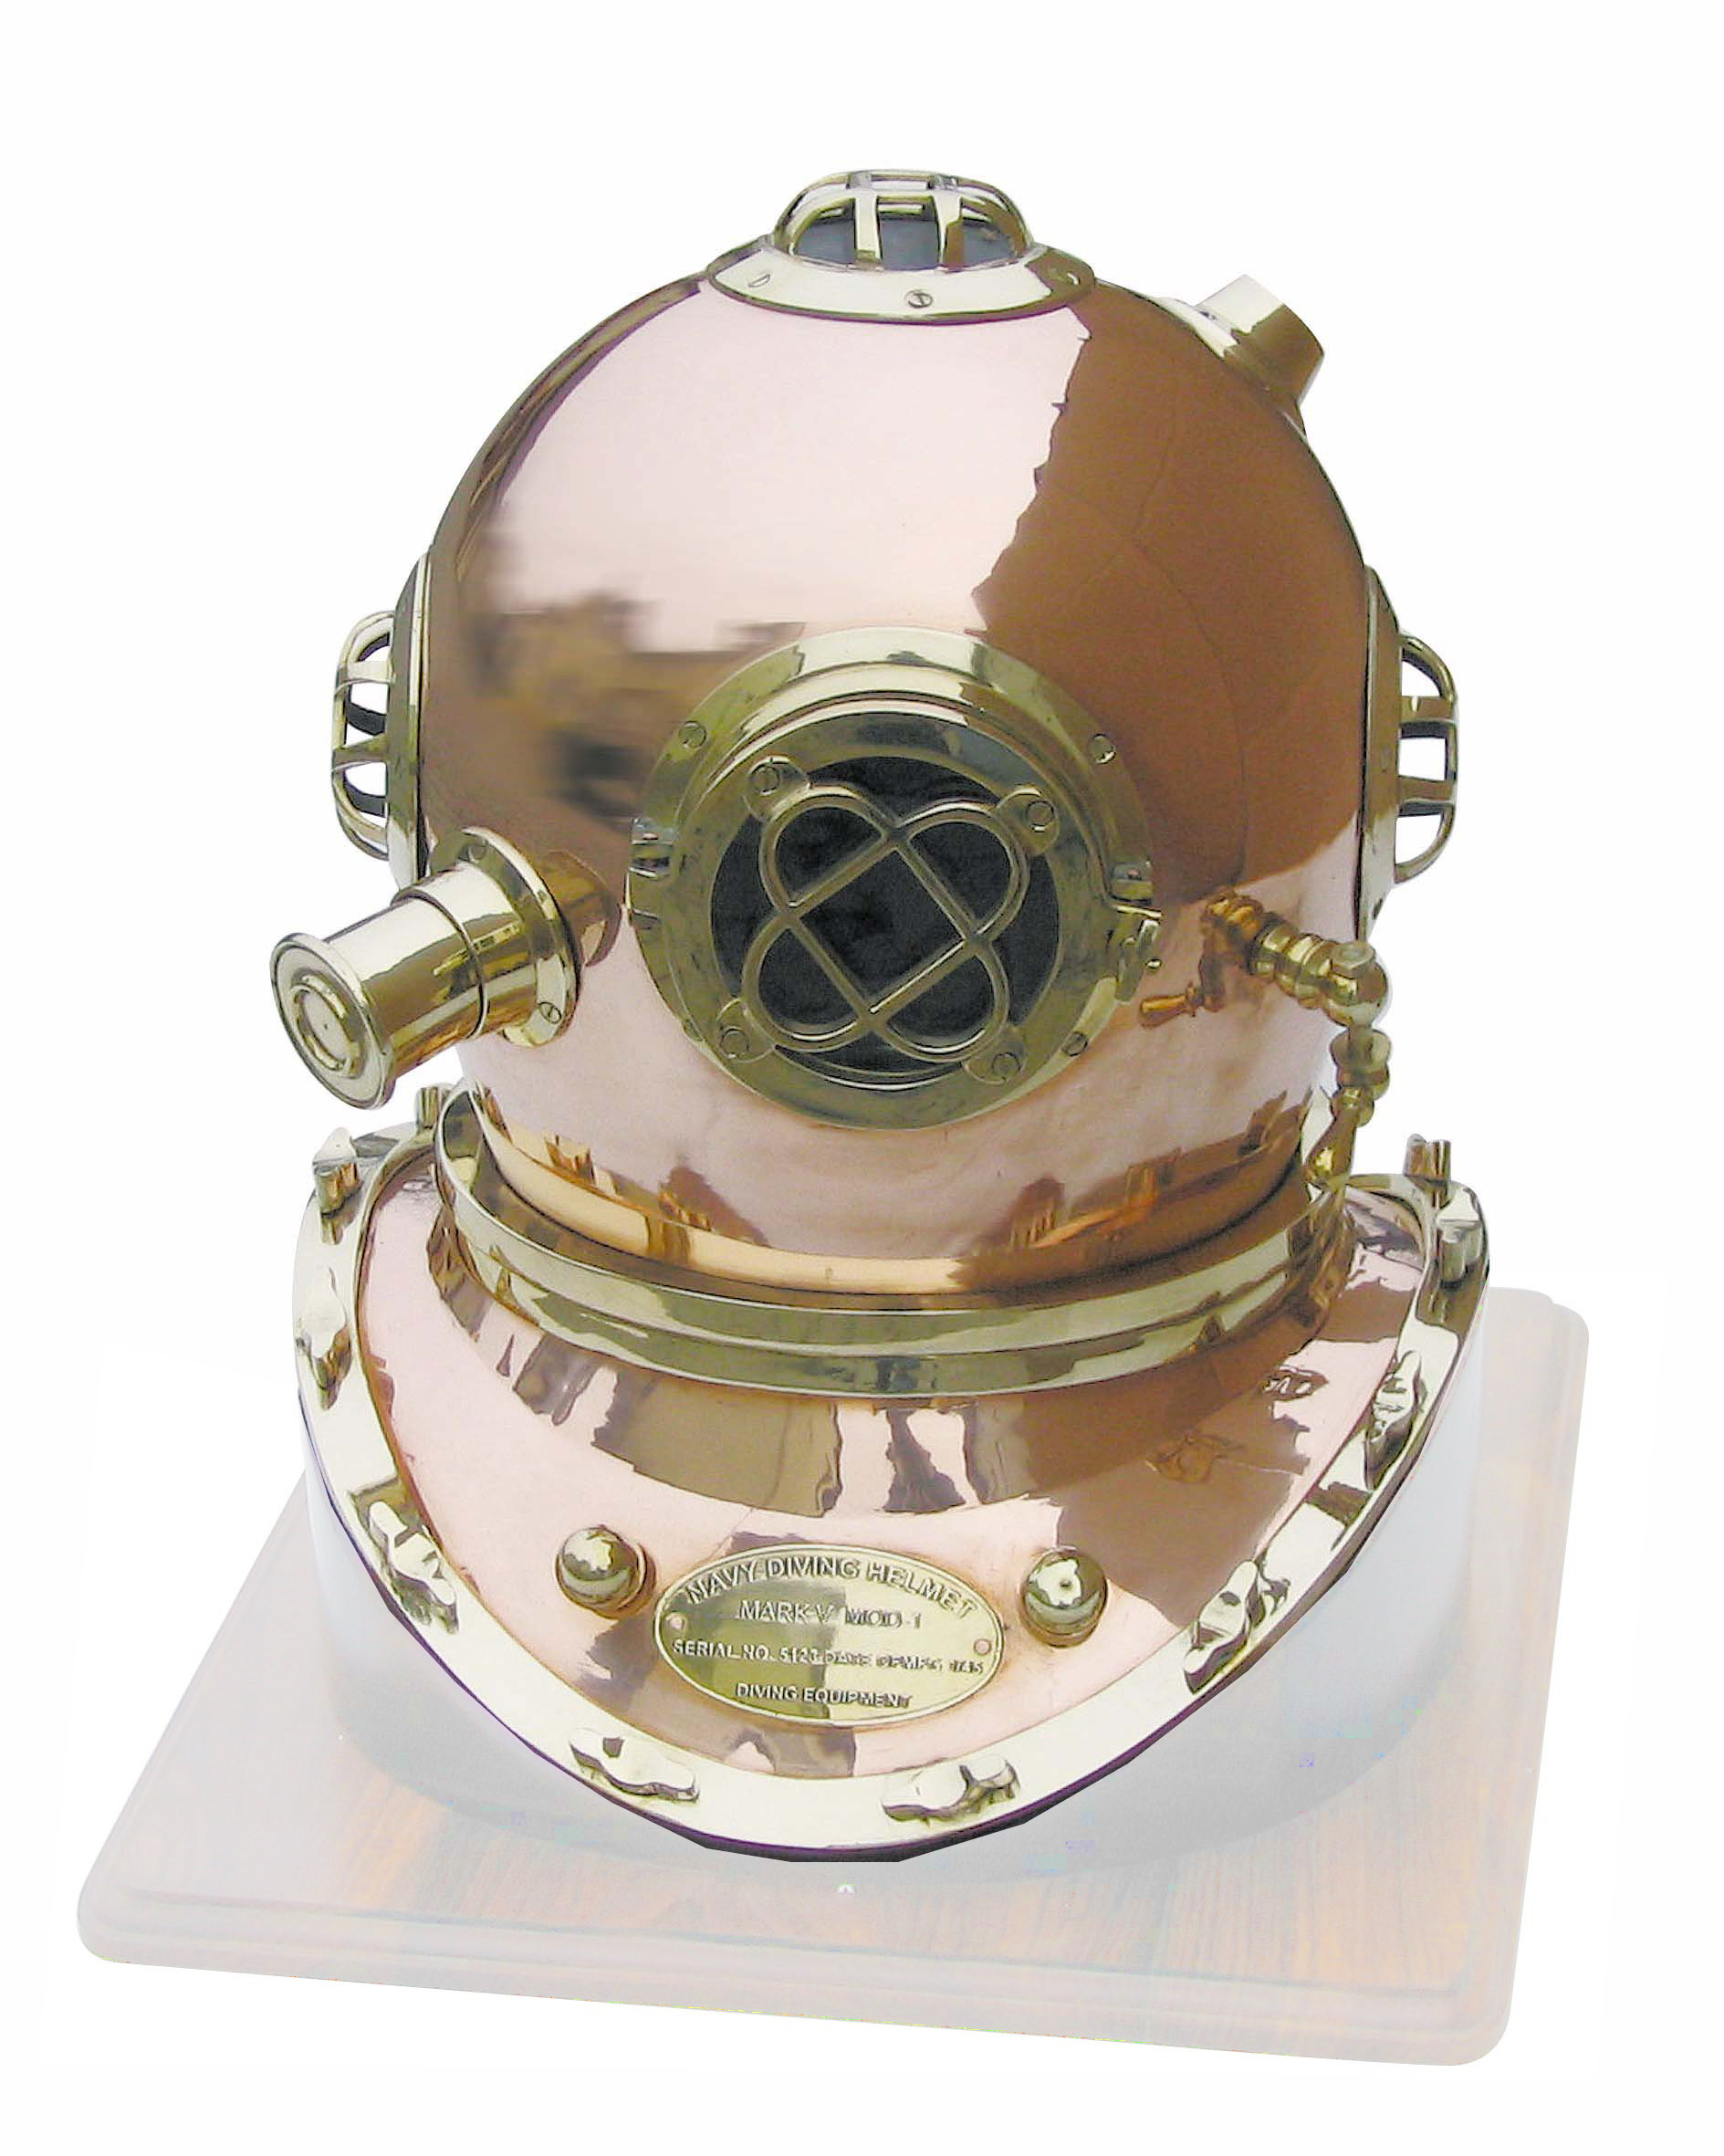 Helmet diver - Copper-Brass - reproduction of the mark V model - marine style - marine decoration